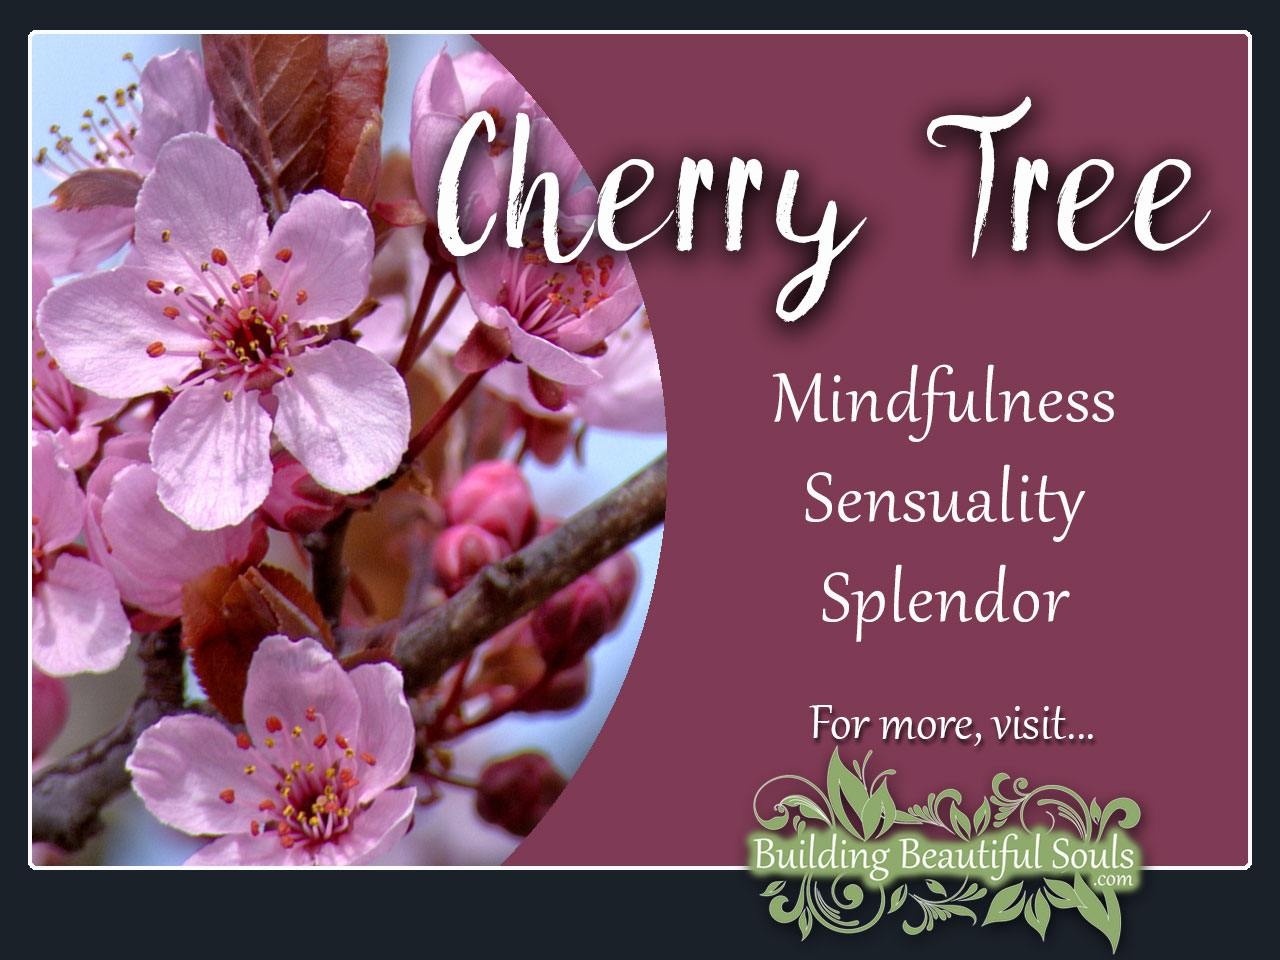 Cherry tree meaning symbolism tree symbolism meanings cherry tree meaning symbolism buycottarizona